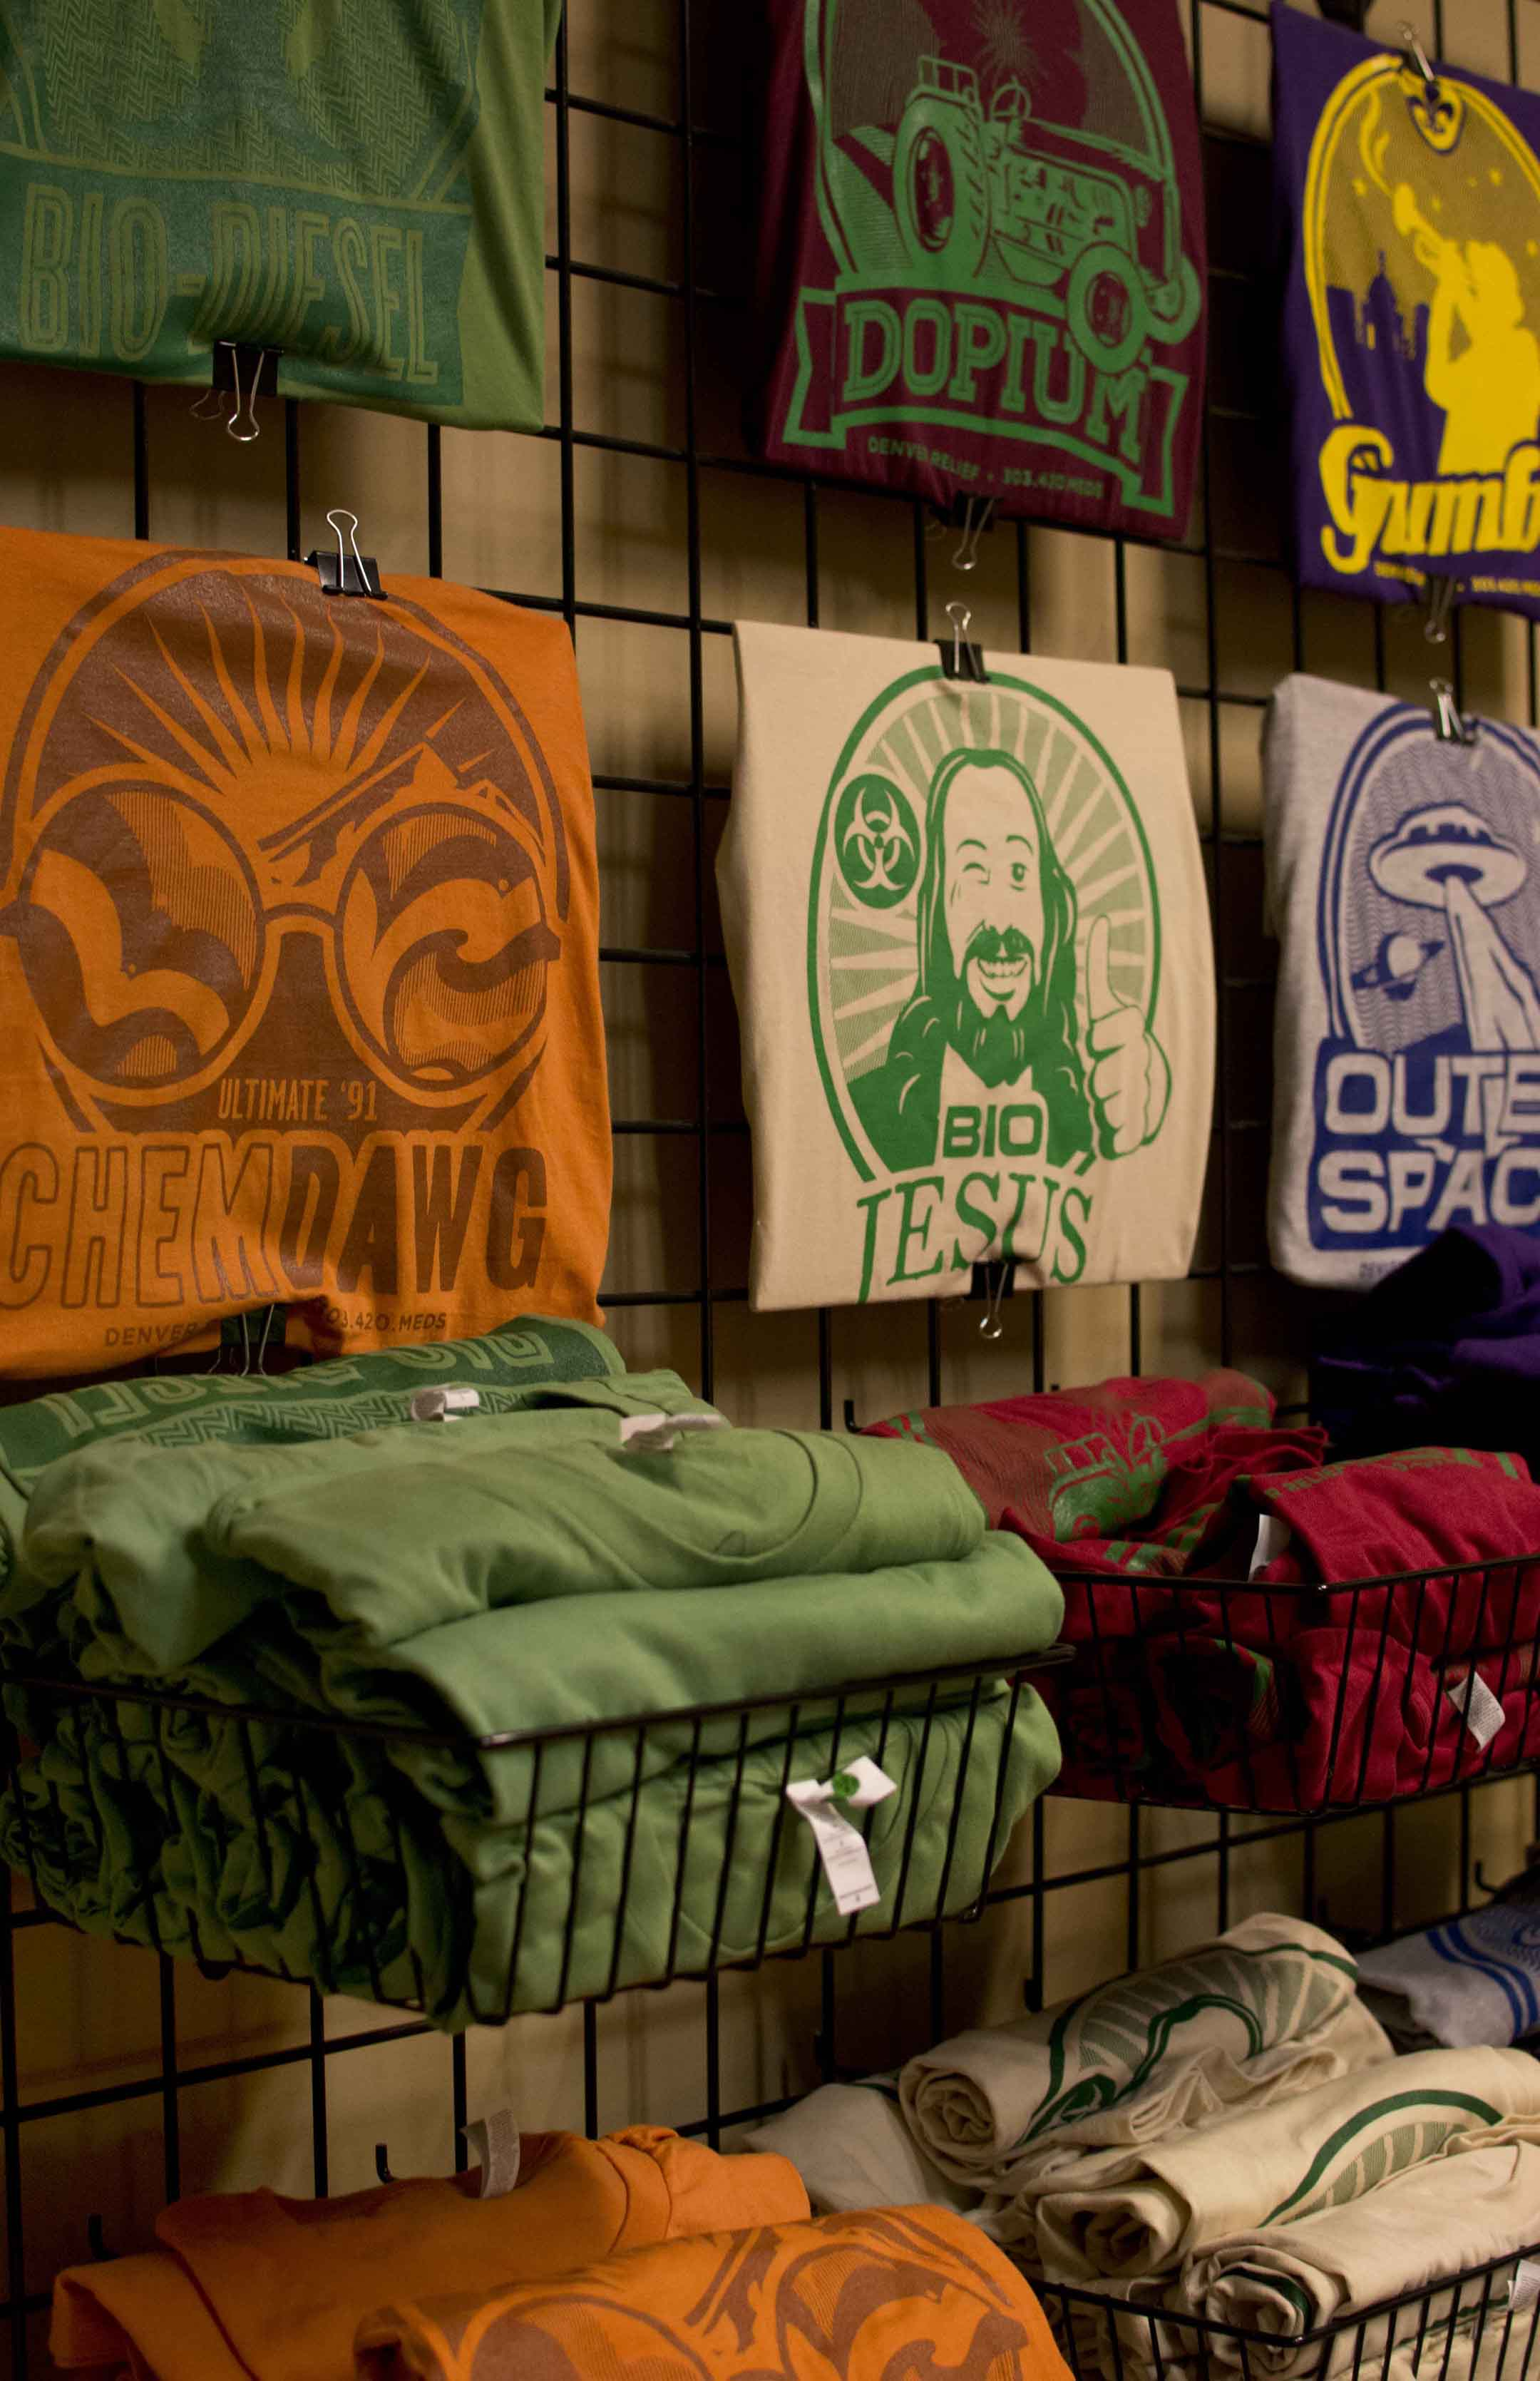 For their own signature in-house strains, Denver Relief has designed logos to go on t-shirts and stickers. My personal favorite design was the Bio Jesus.